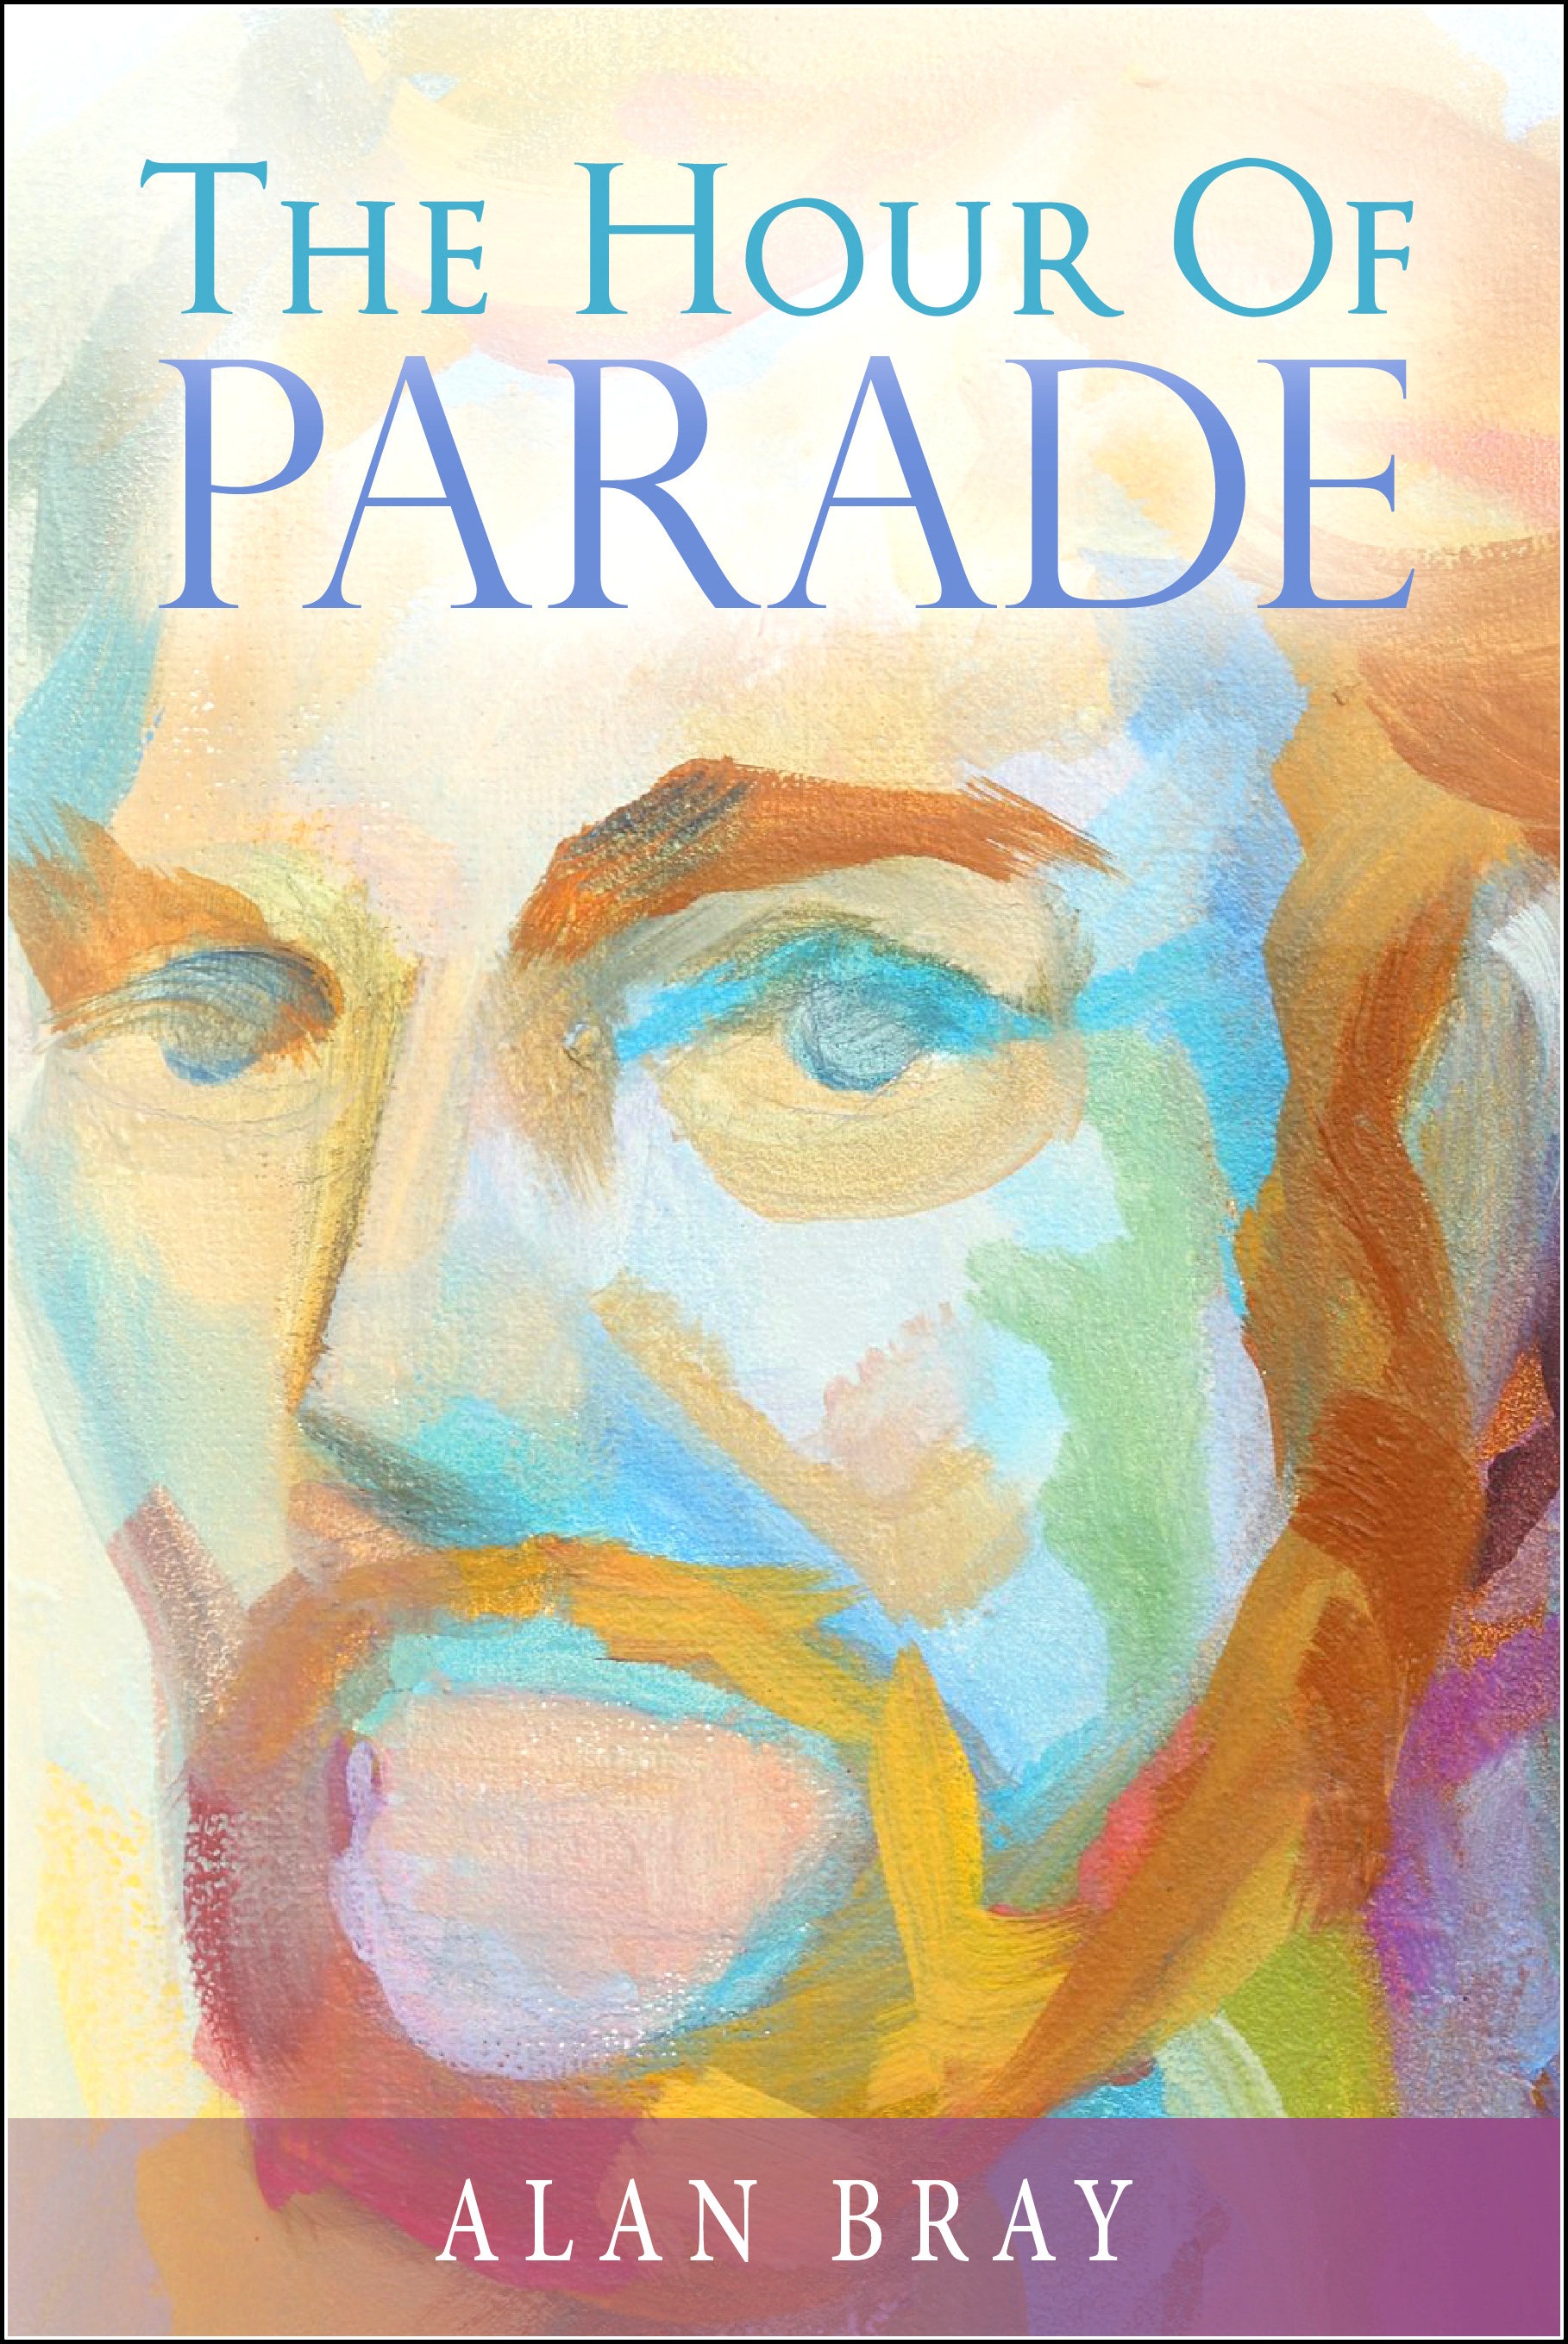 The Hour of Parade by Alan Bray